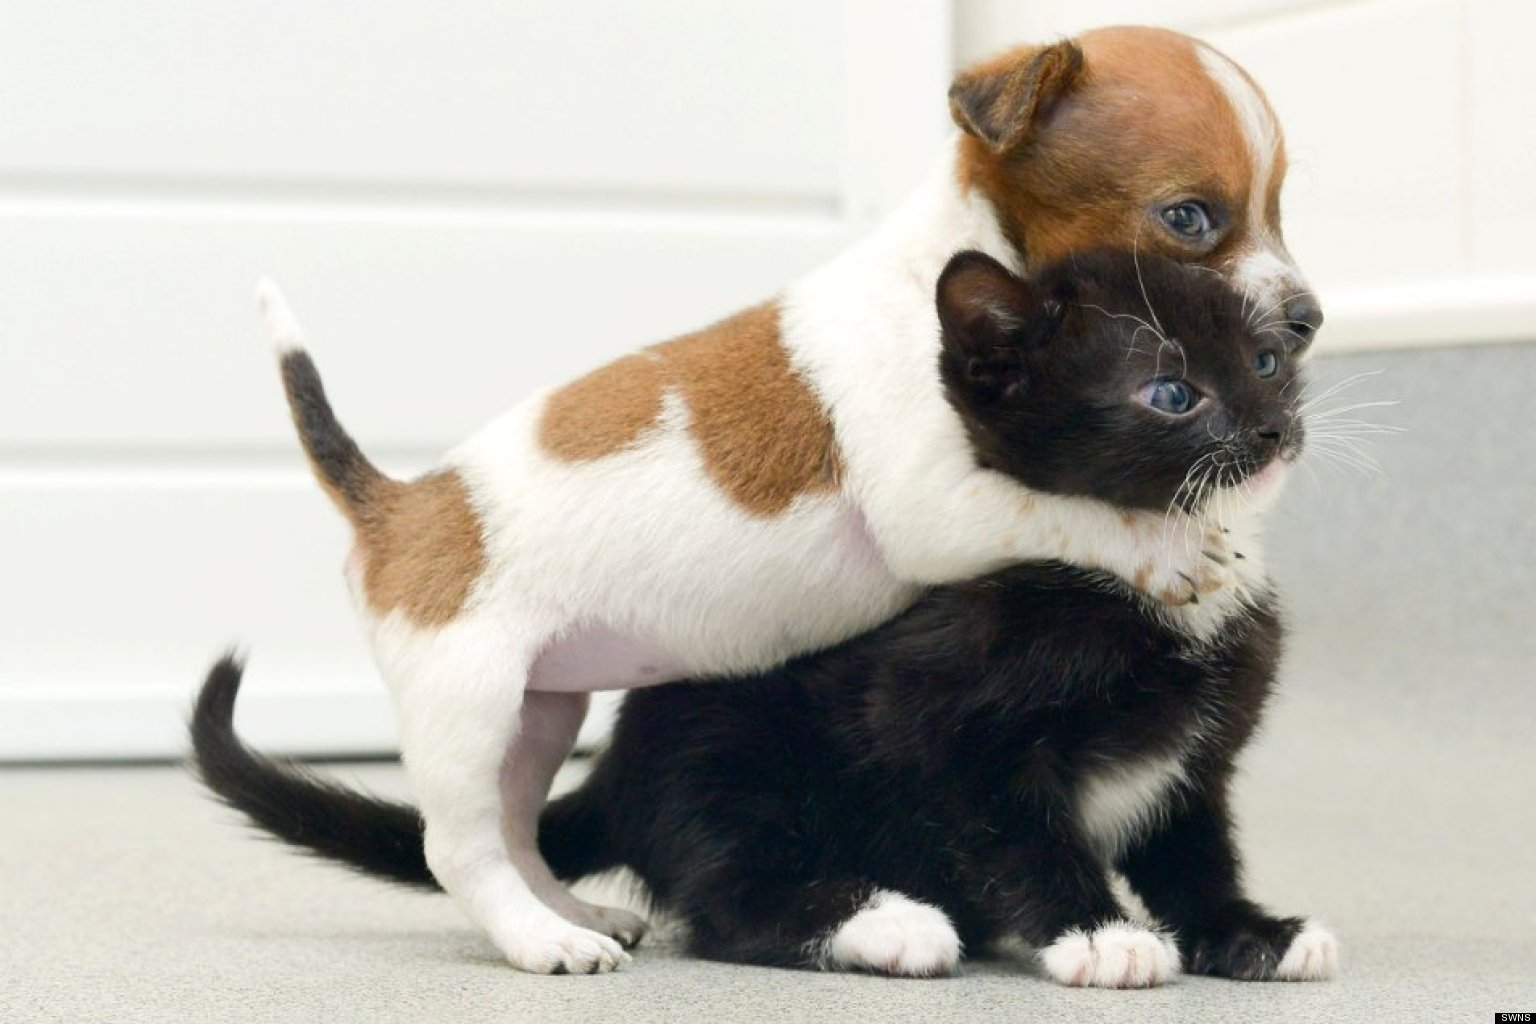 very cute puppies and kittens together